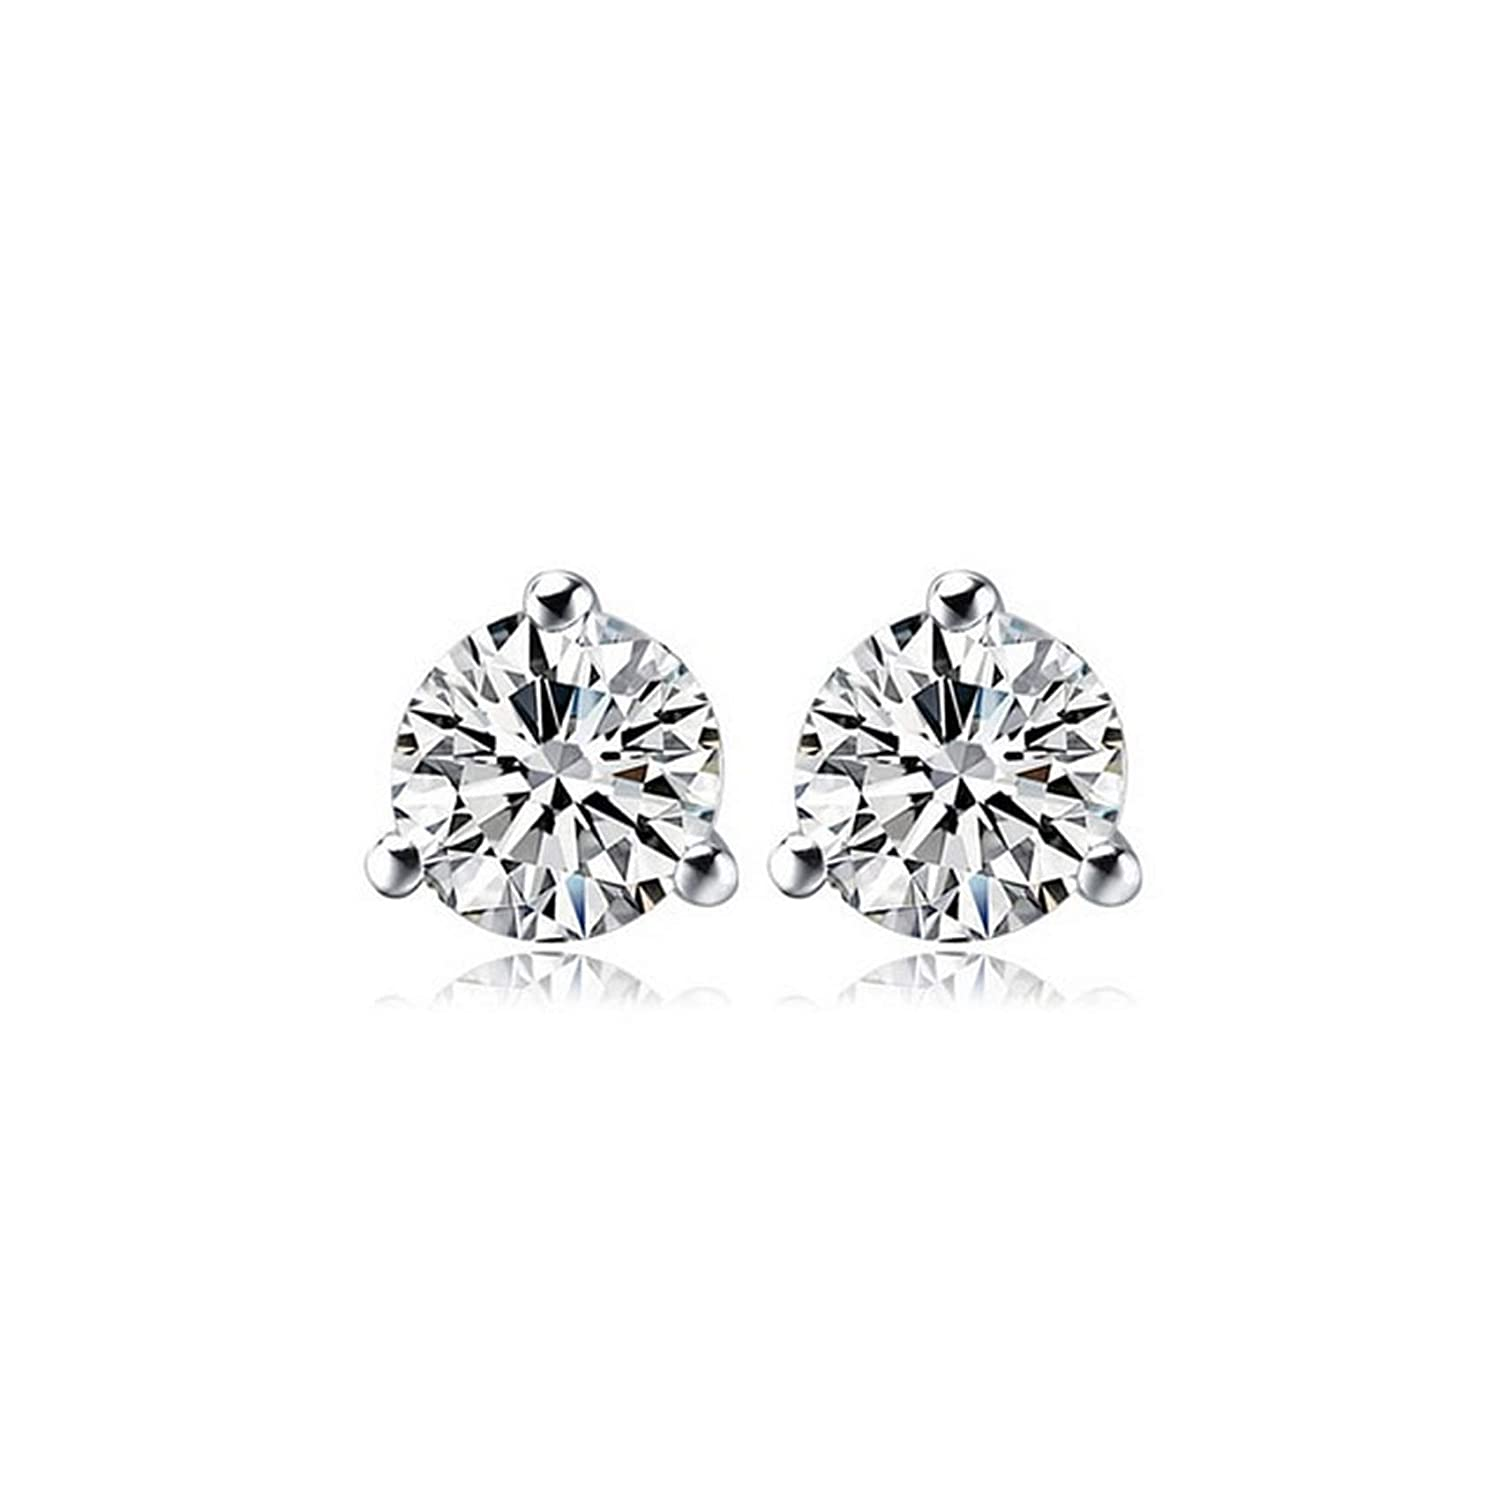 Silver Earrings By CS-DB Classic 3 Prongs 1 Single Round Clear AAA Cubic Zirconia Stud Earrings For Womens